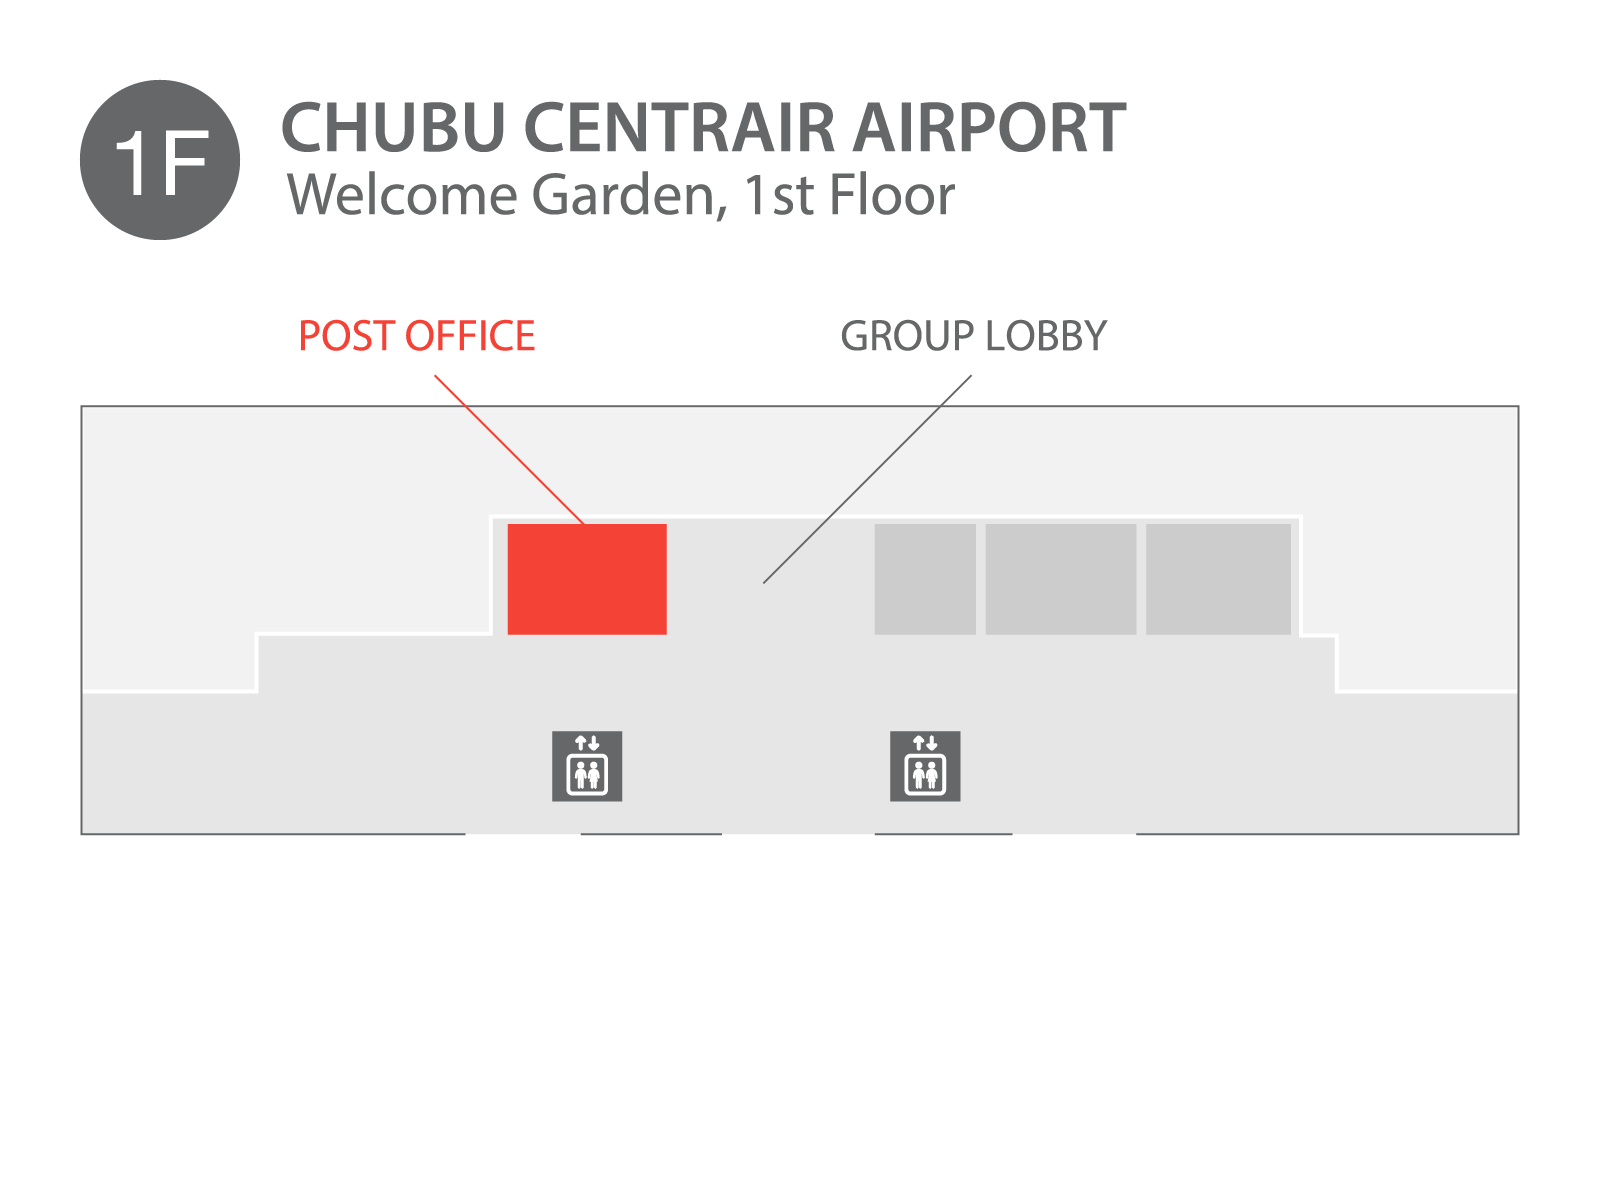 Chubu Centrair Airport - Chubu Centrair airport located on 1st floor.